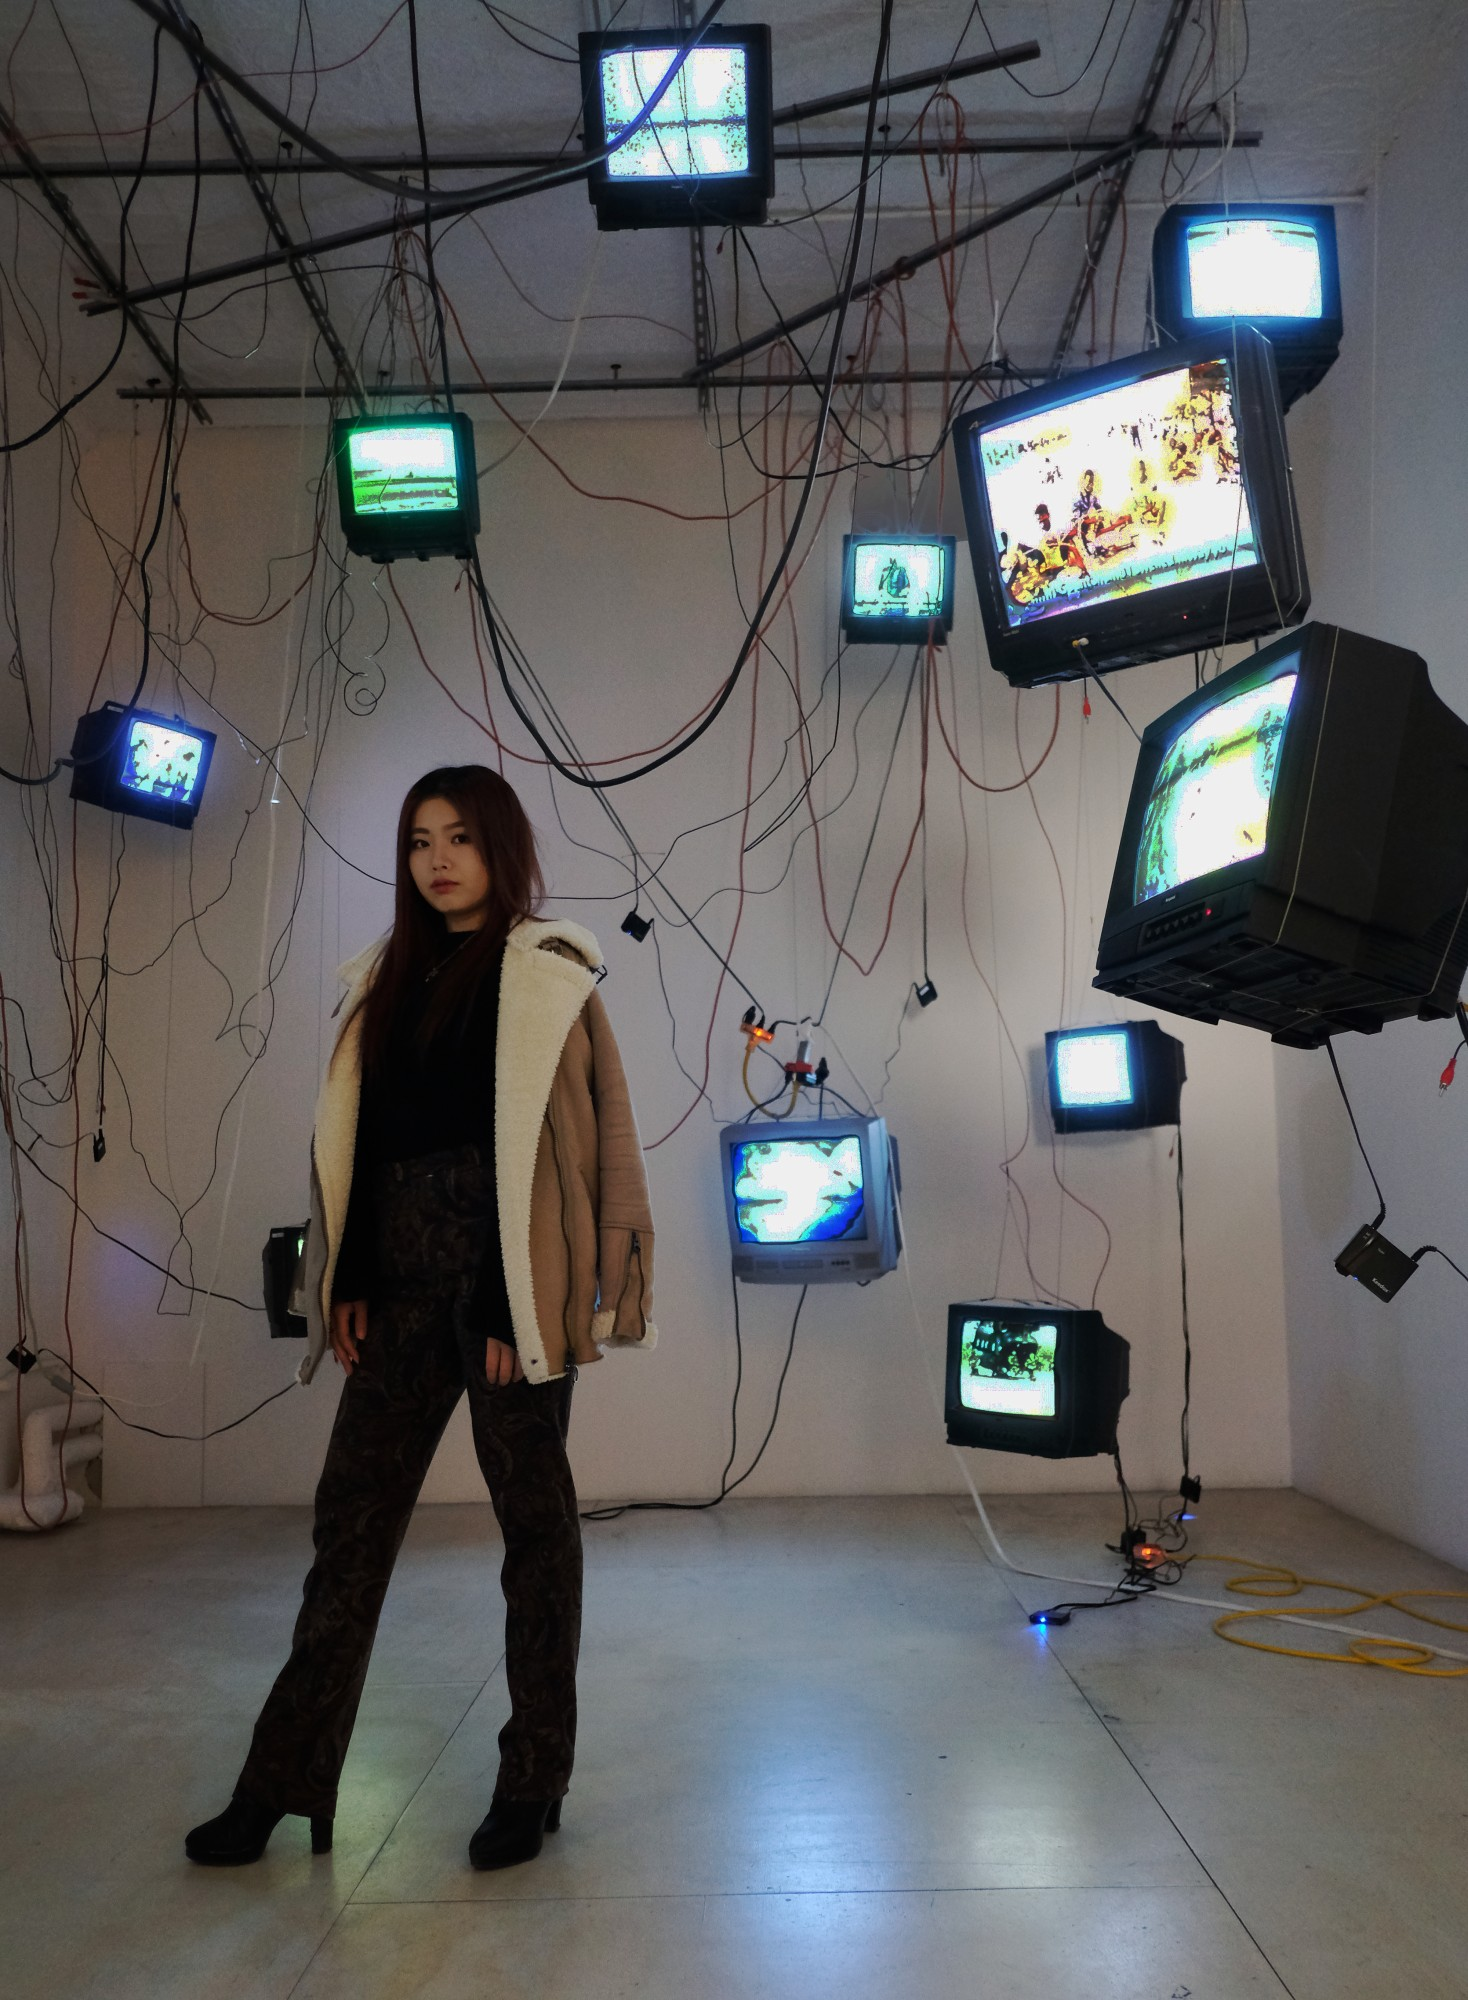 Japanese girl amidst TV screens